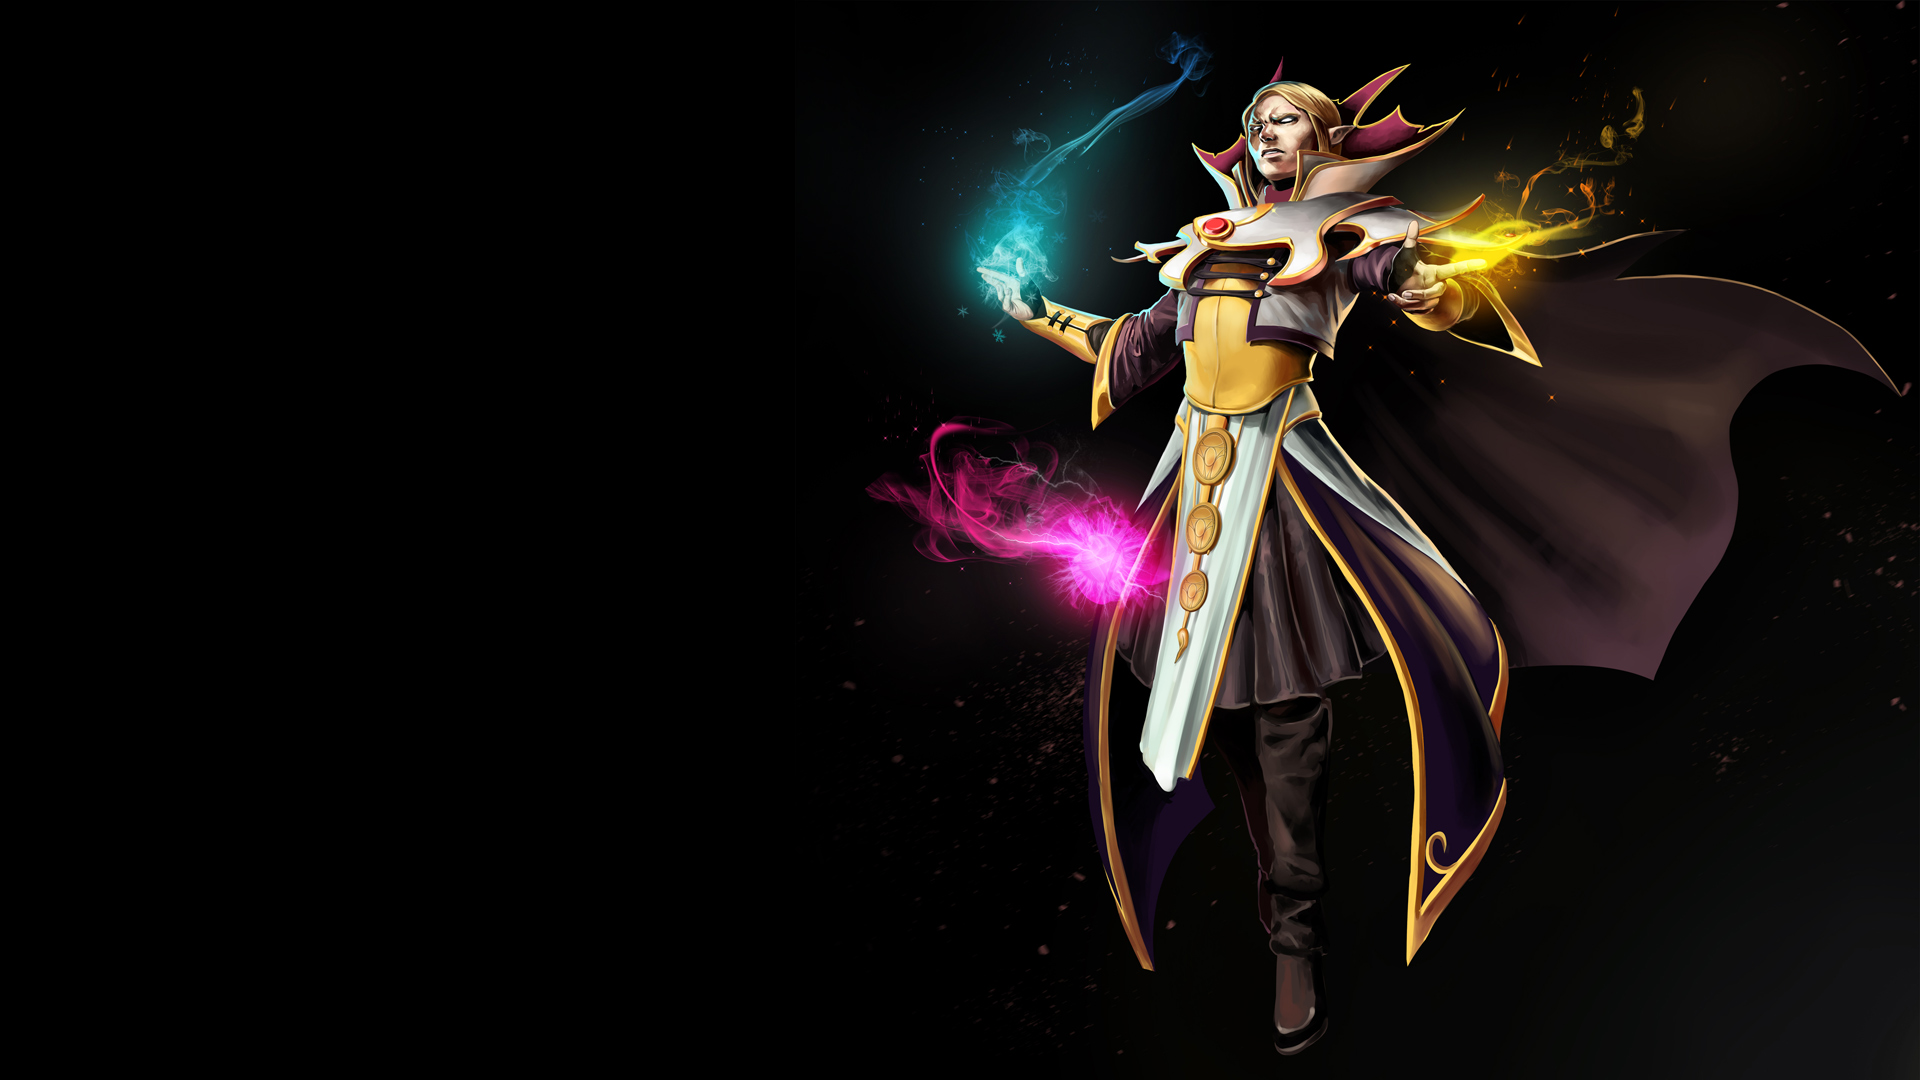 Invoker Dota 2 1920x1080 25 Wallpaper HD